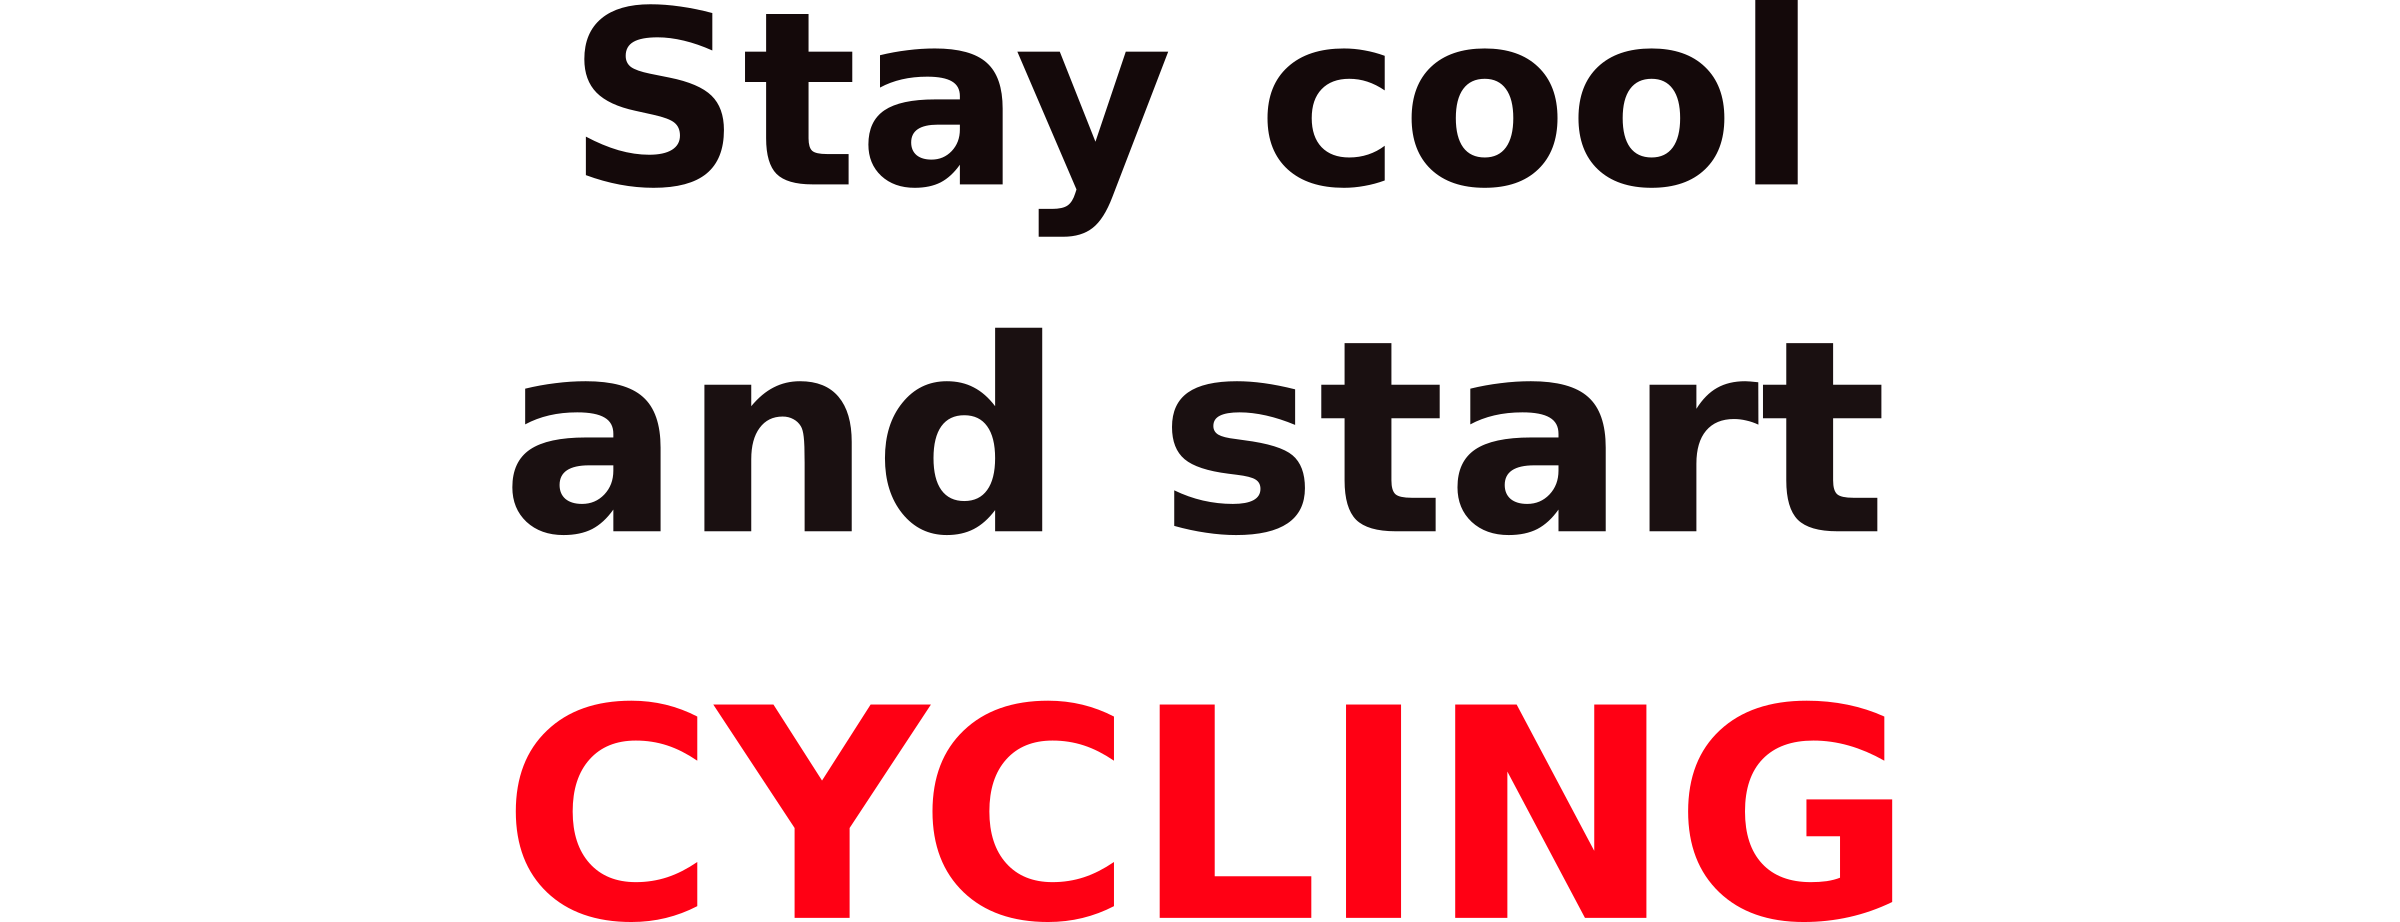 School is cool clipart library Clipart - Stay cool & start cycling library